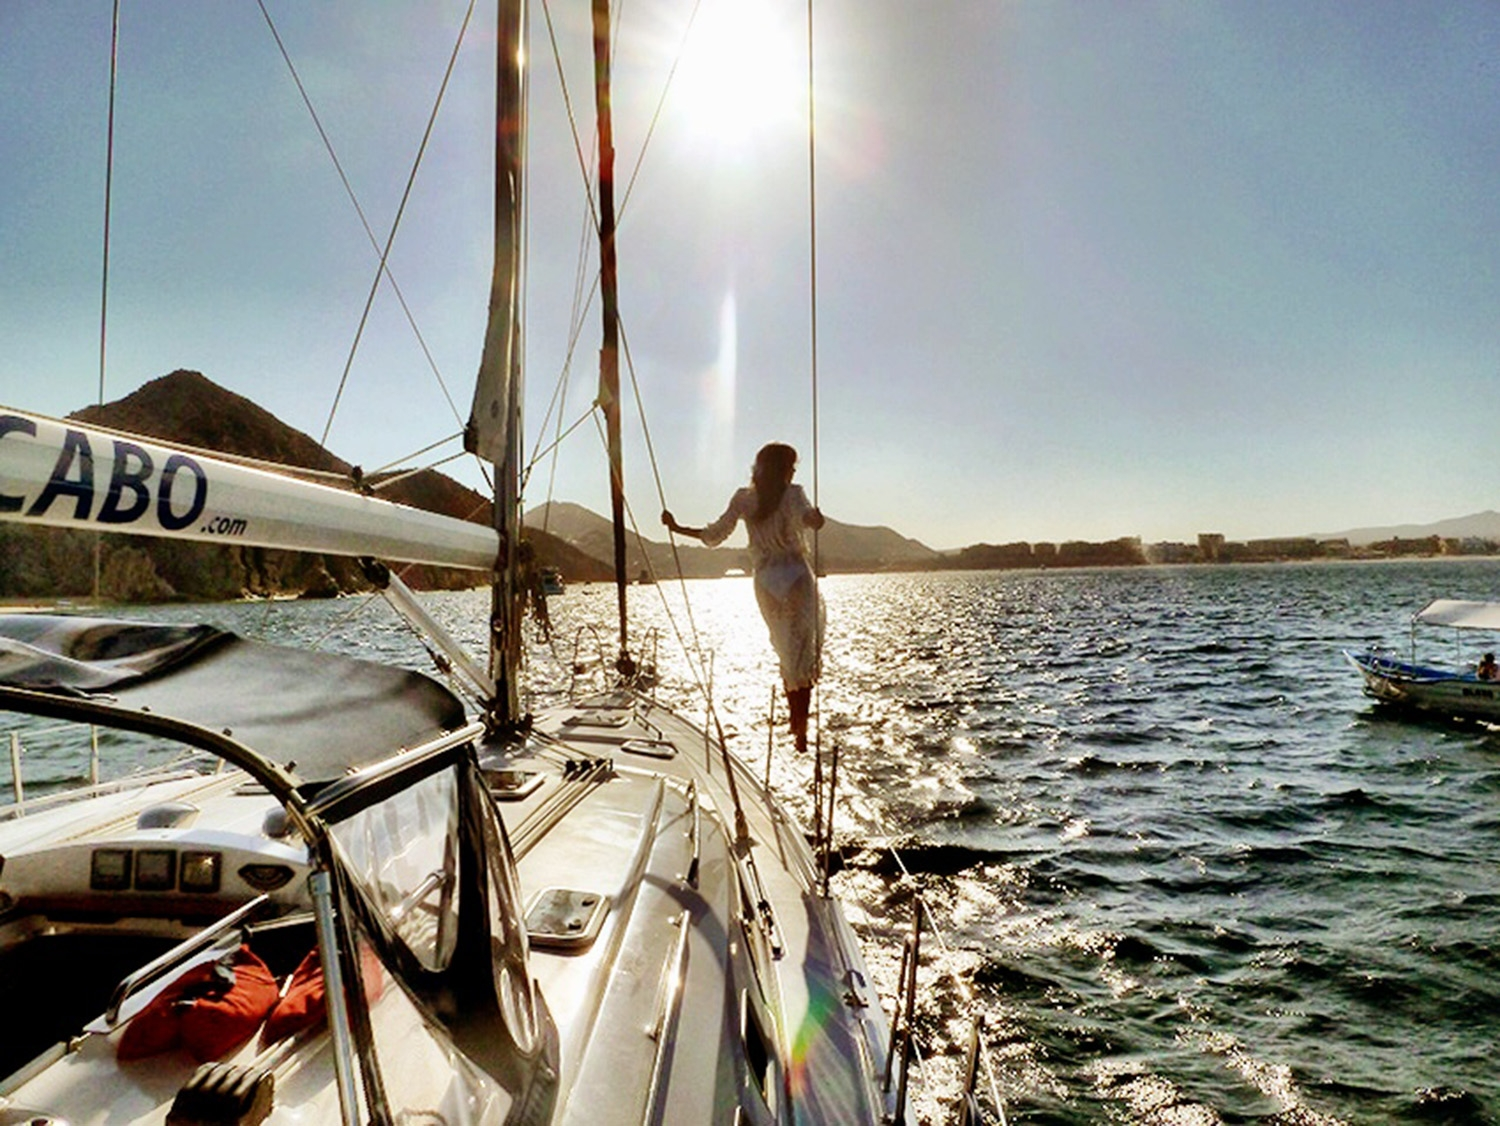 The sun shines down over the mountains and onto the ocean, where our model stands at the bow of the yacht